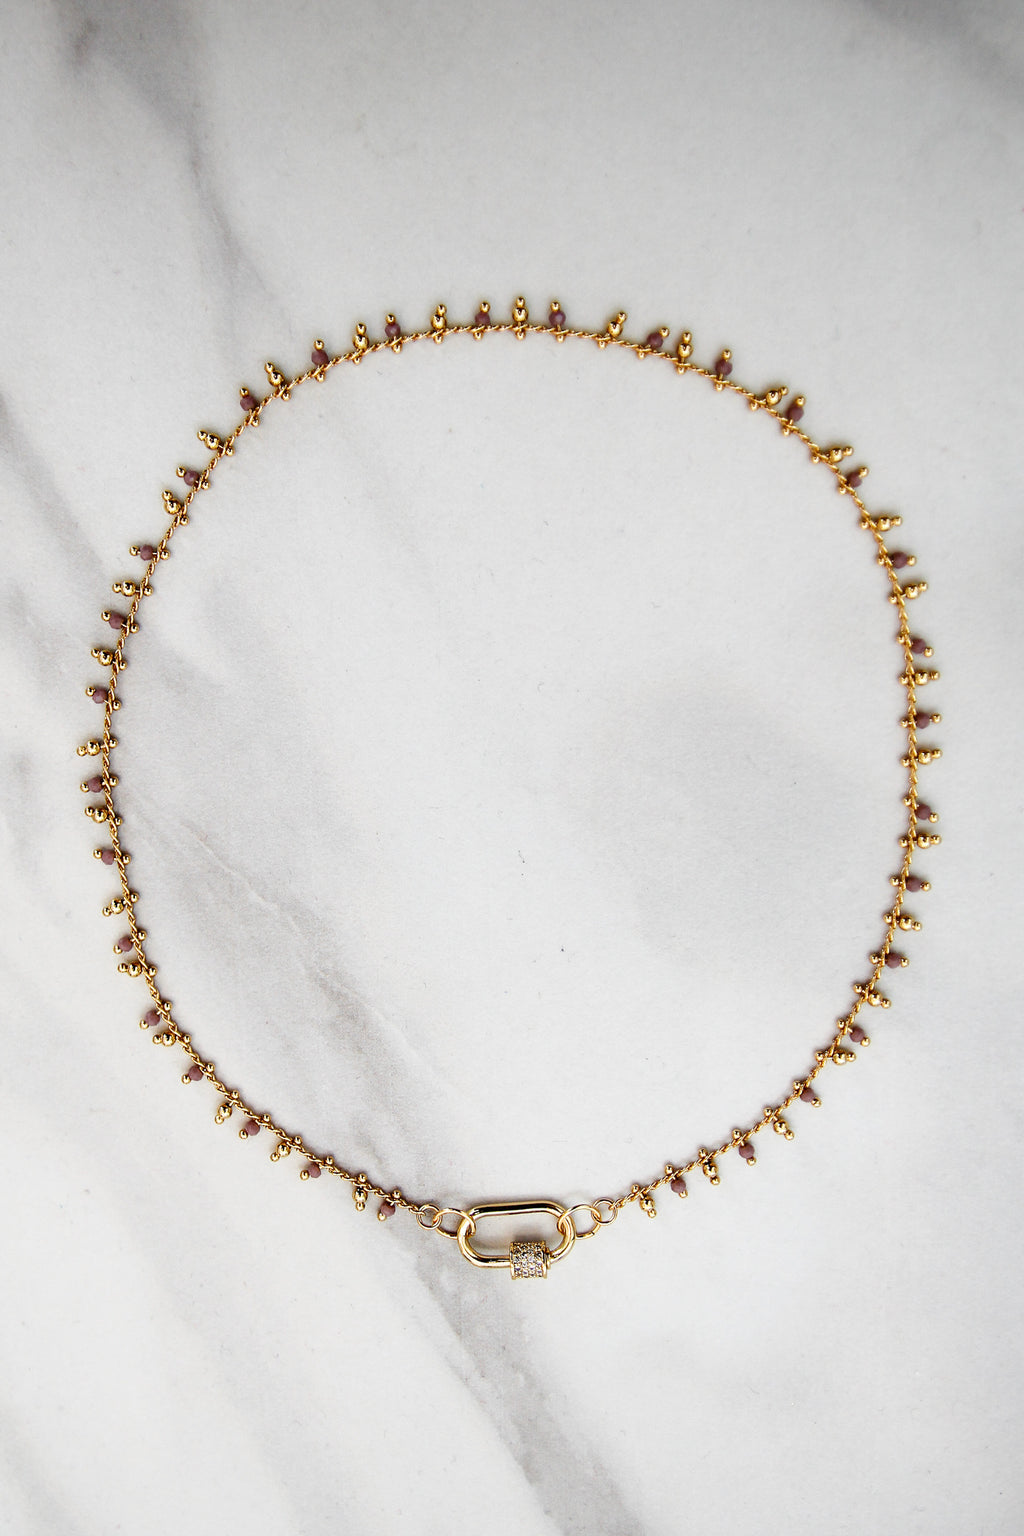 Royal Beaded Drip Choker - Gold & Lilac